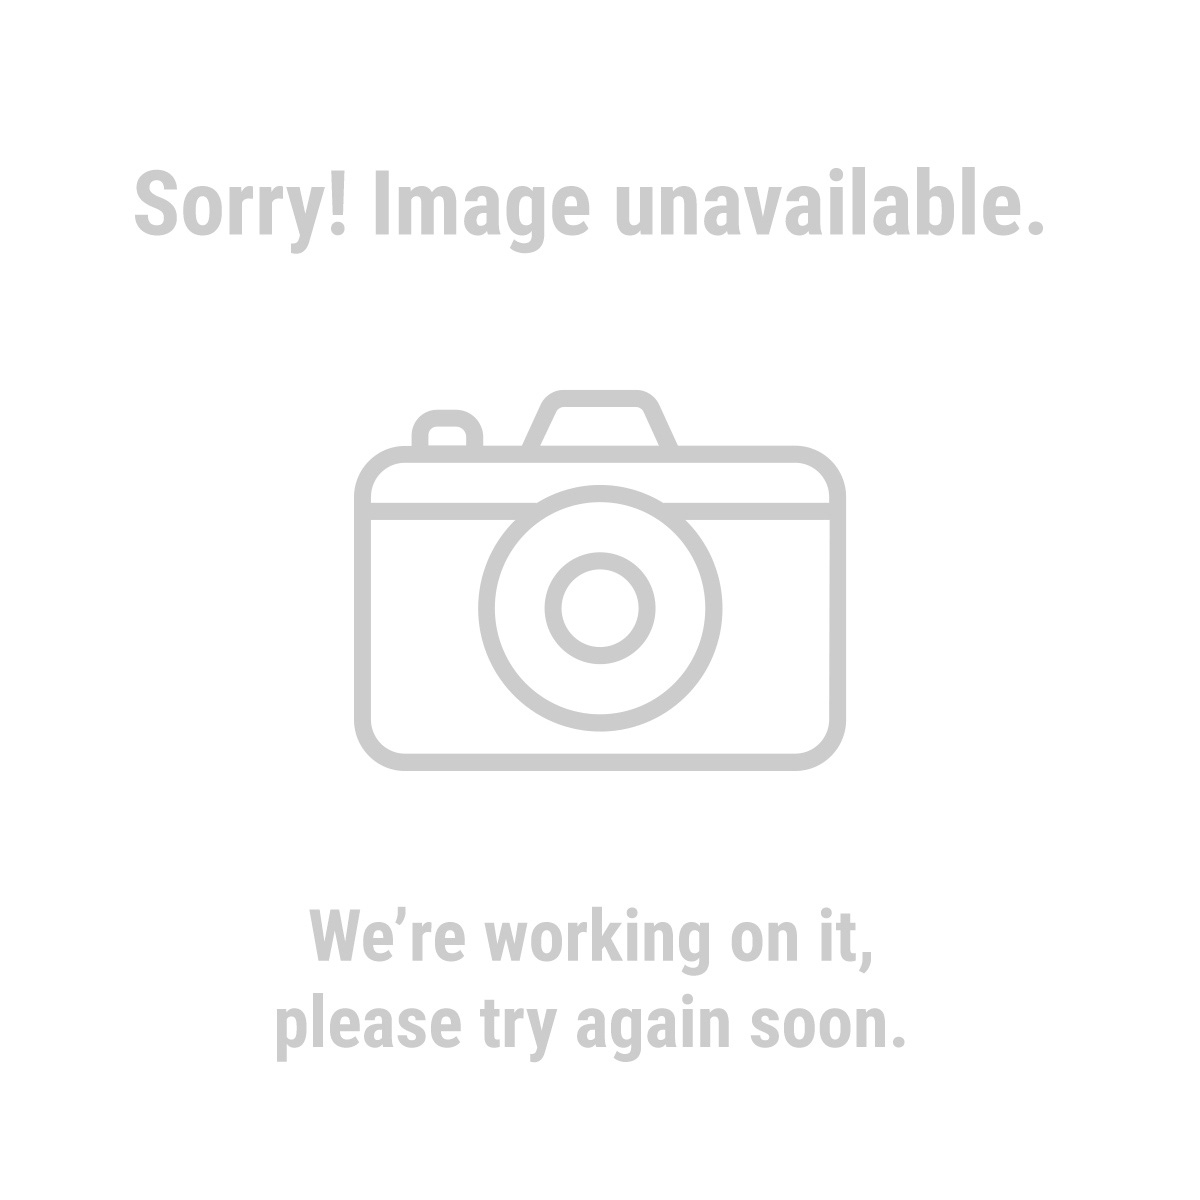 Central Pneumatic® 95275 Pancake Air Compressor, Oilless 1/3 Horsepower, 3 Gallon, 100 PSI